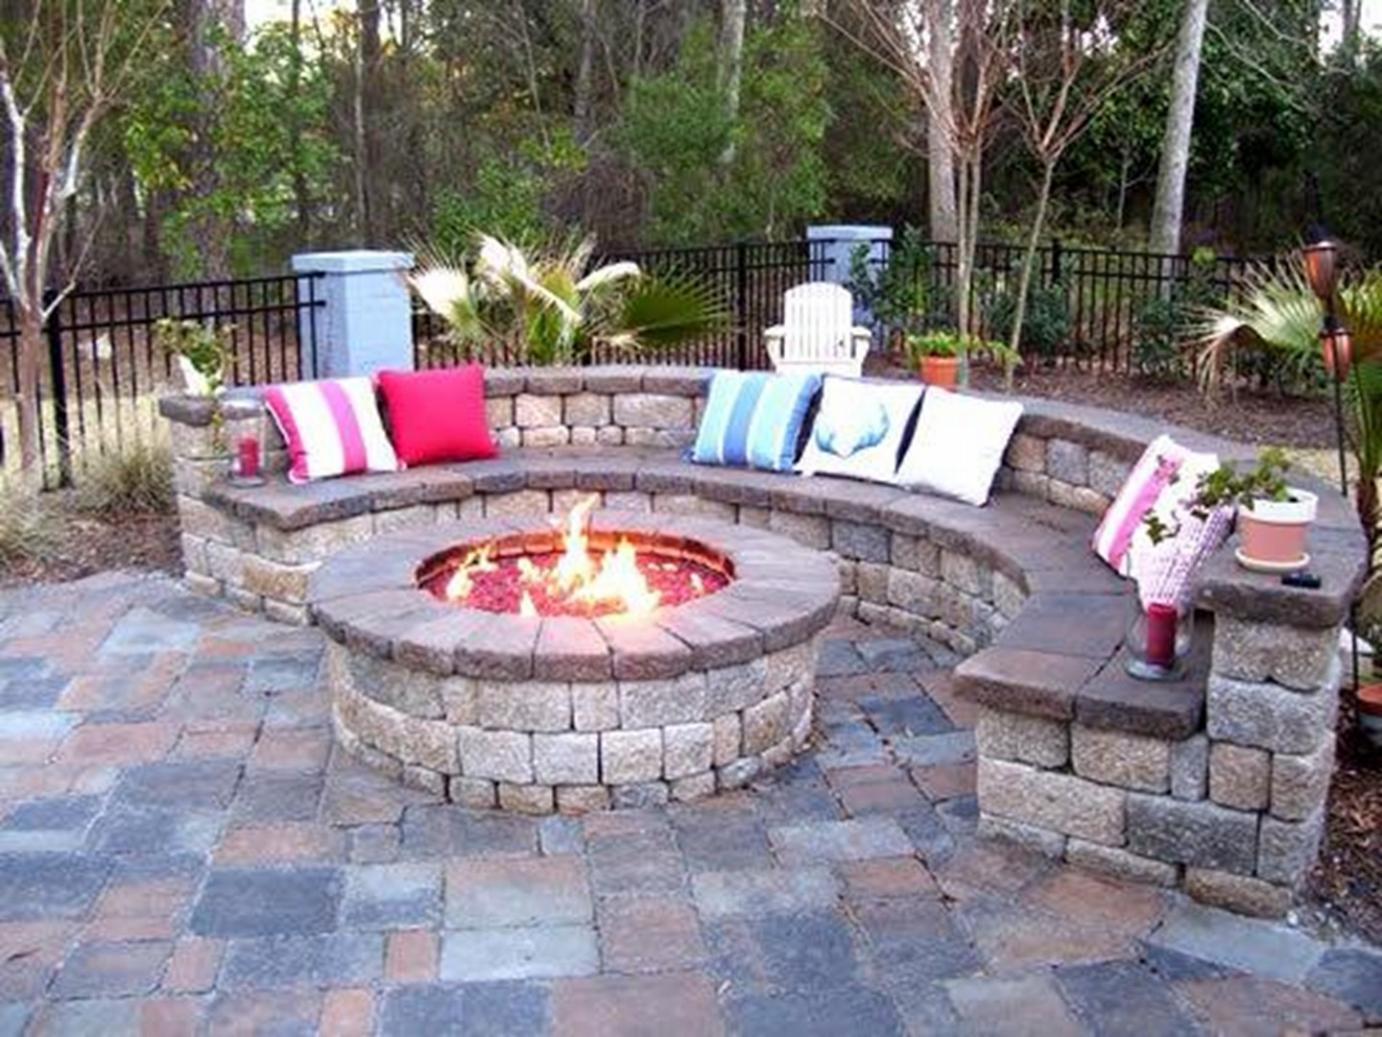 Backyard fire pit design Backyard fire pit ideas landscaping